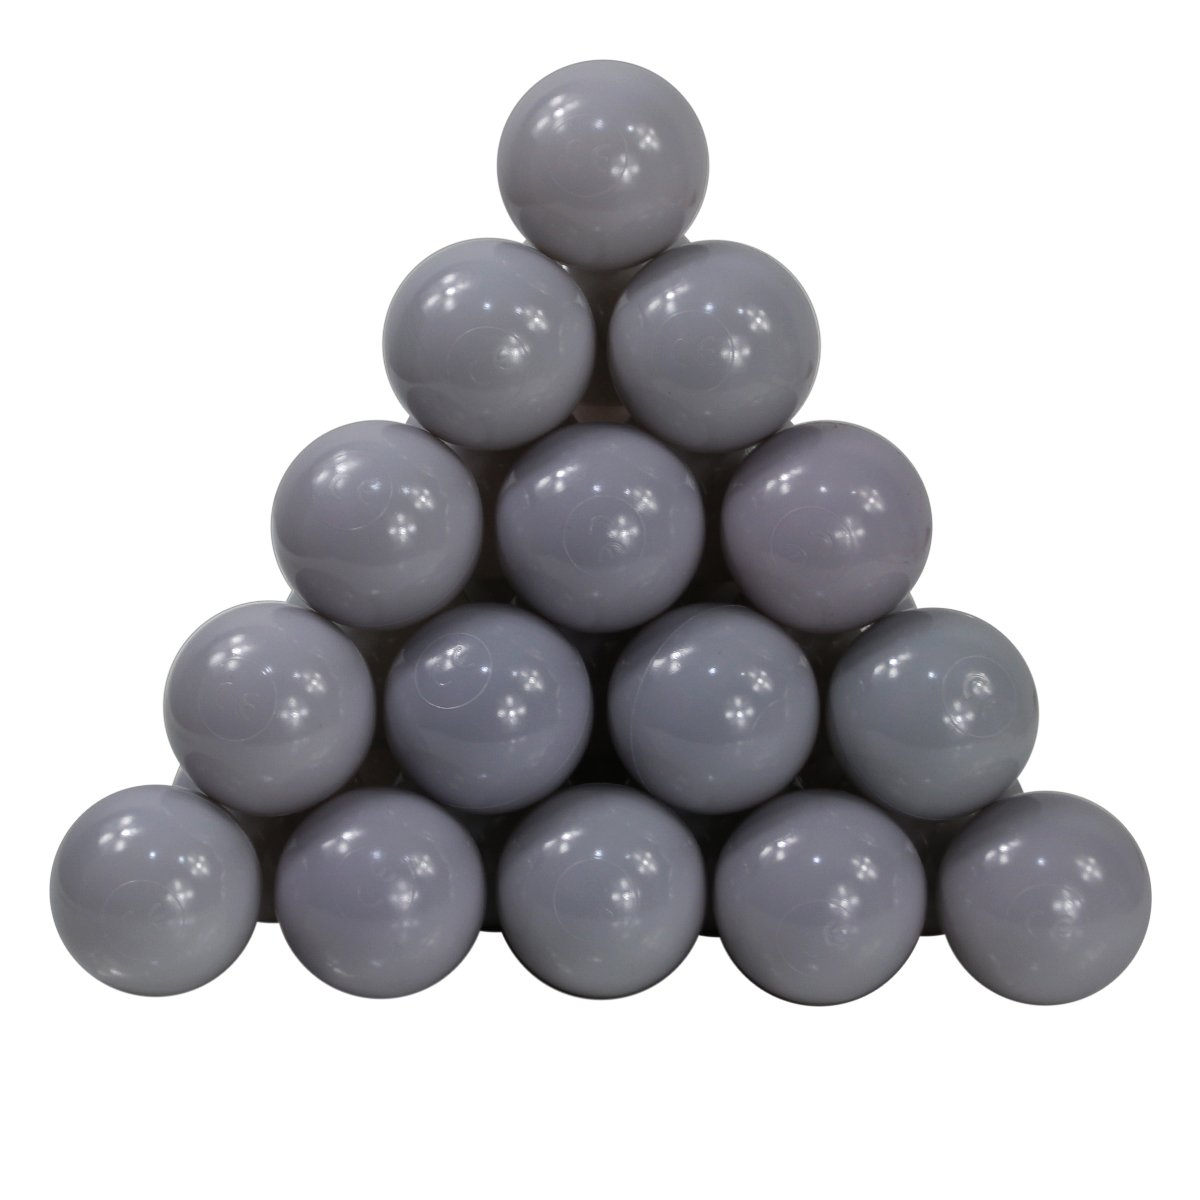 Langxun Pack of 200 Silver ( Gray ) Ball Pit Balls - Phthalate Free BPA Free Crush Proof Plastic Ball | Ideal Gifts for Kids & Photo Booth Props for Baby and Kids by Langxun (Image #3)